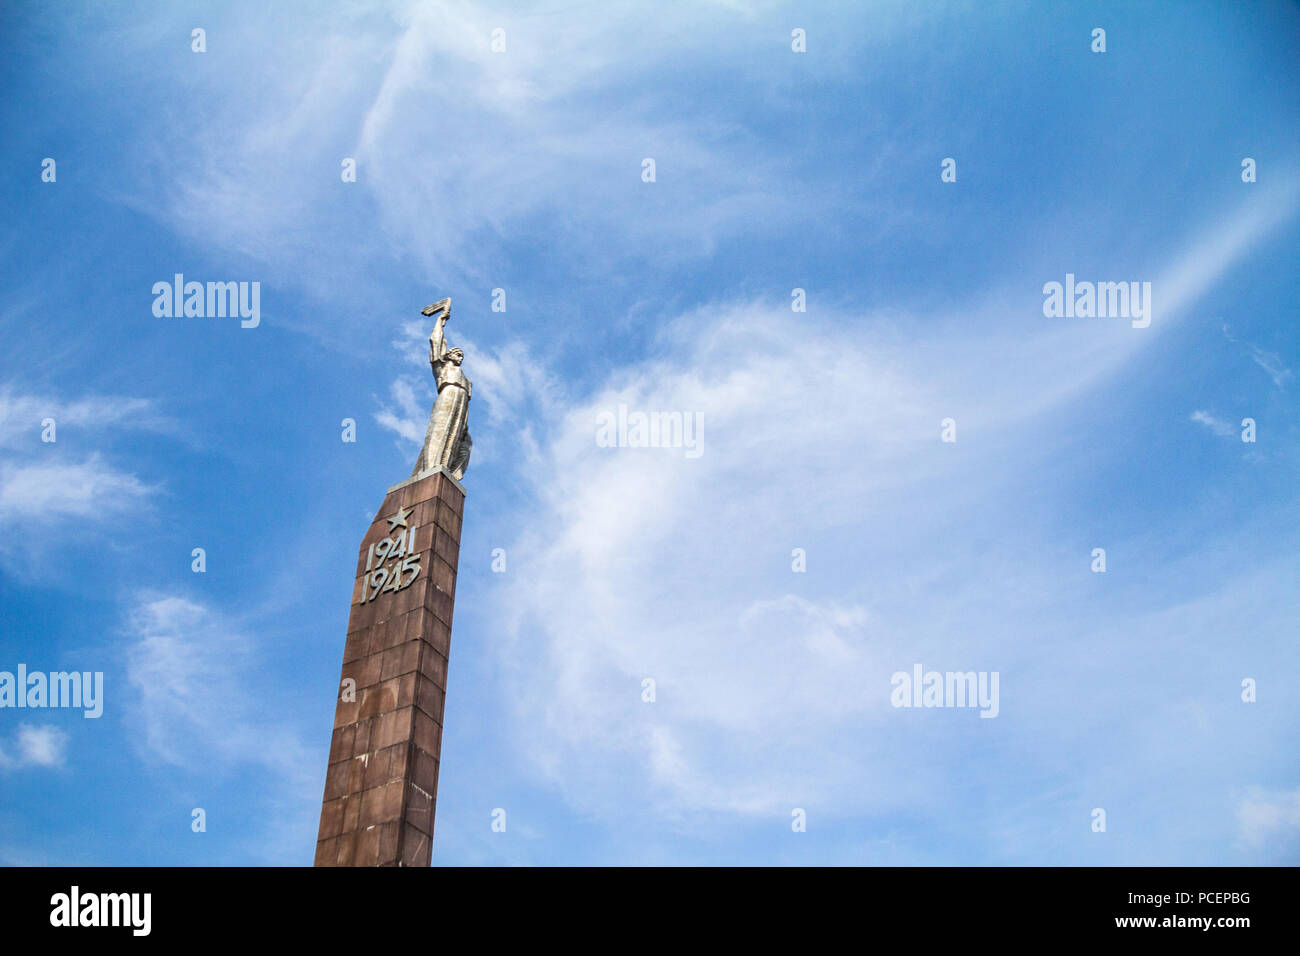 DNIPROPETROVSK, UKRAINE - AUGUST 16, 2018: Monument of Eternal Glory seen from below, one of the main landmarks of the city, dedicated to the World Wa - Stock Image